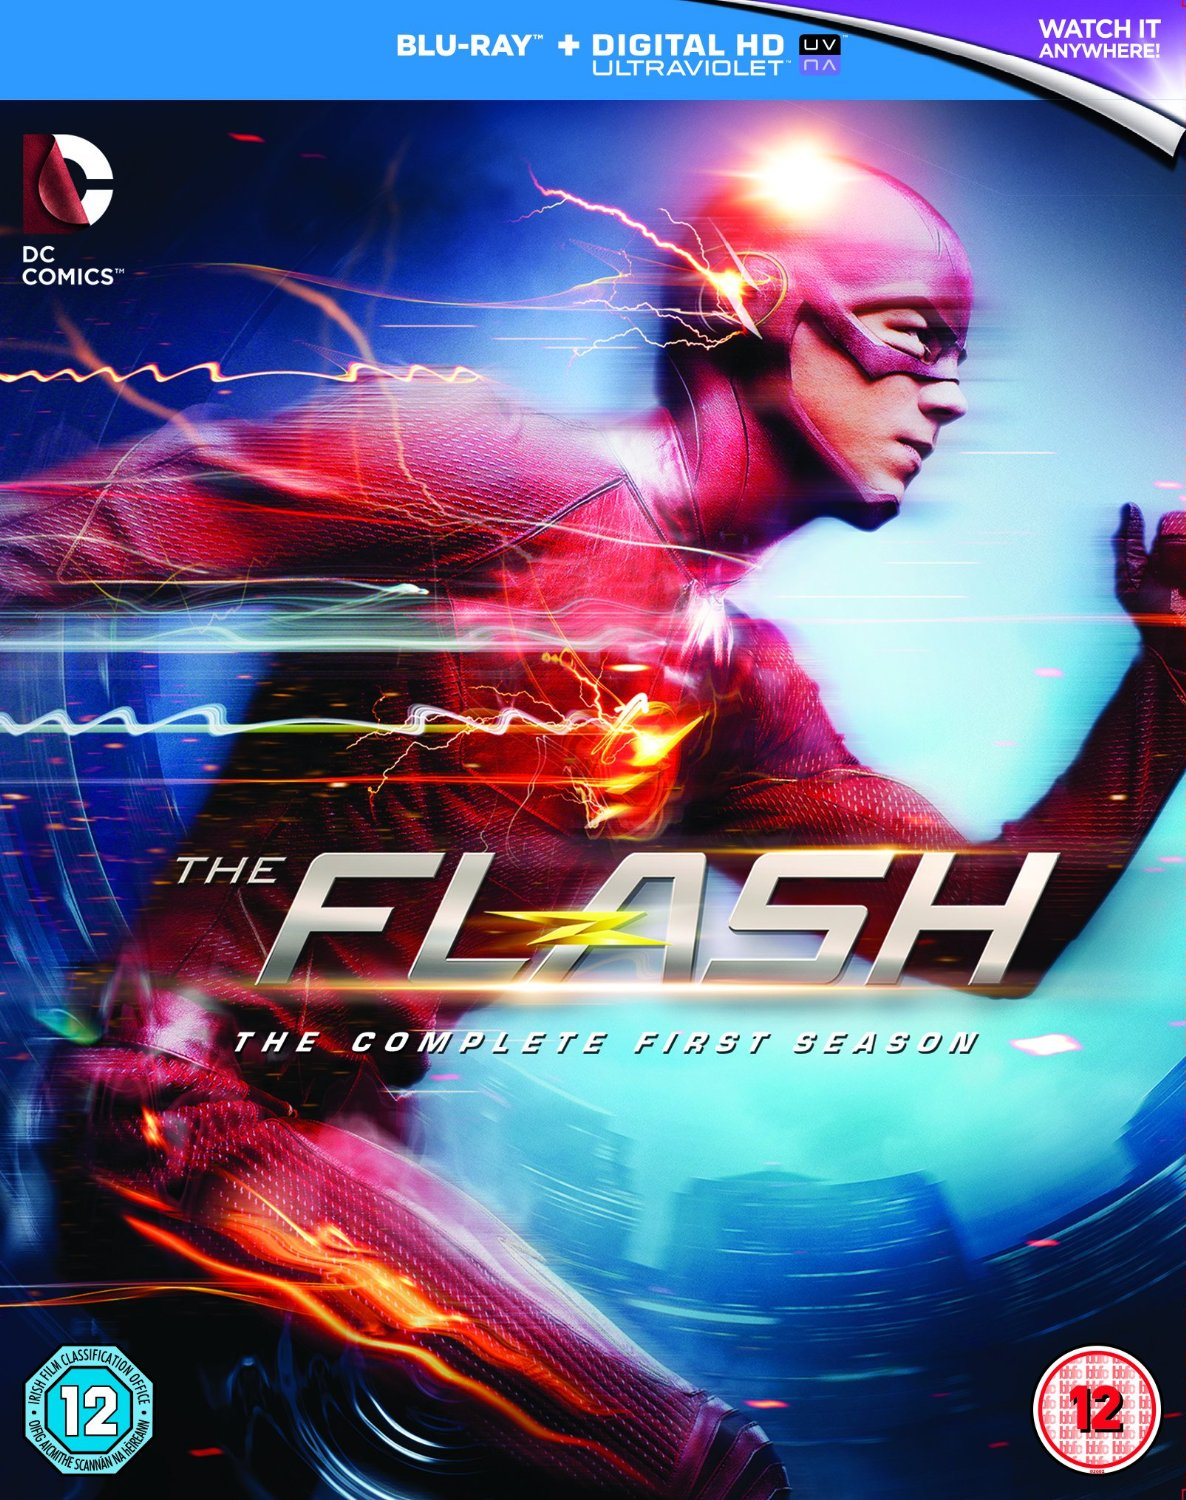 The Flash Season 1 review: speeding to the top